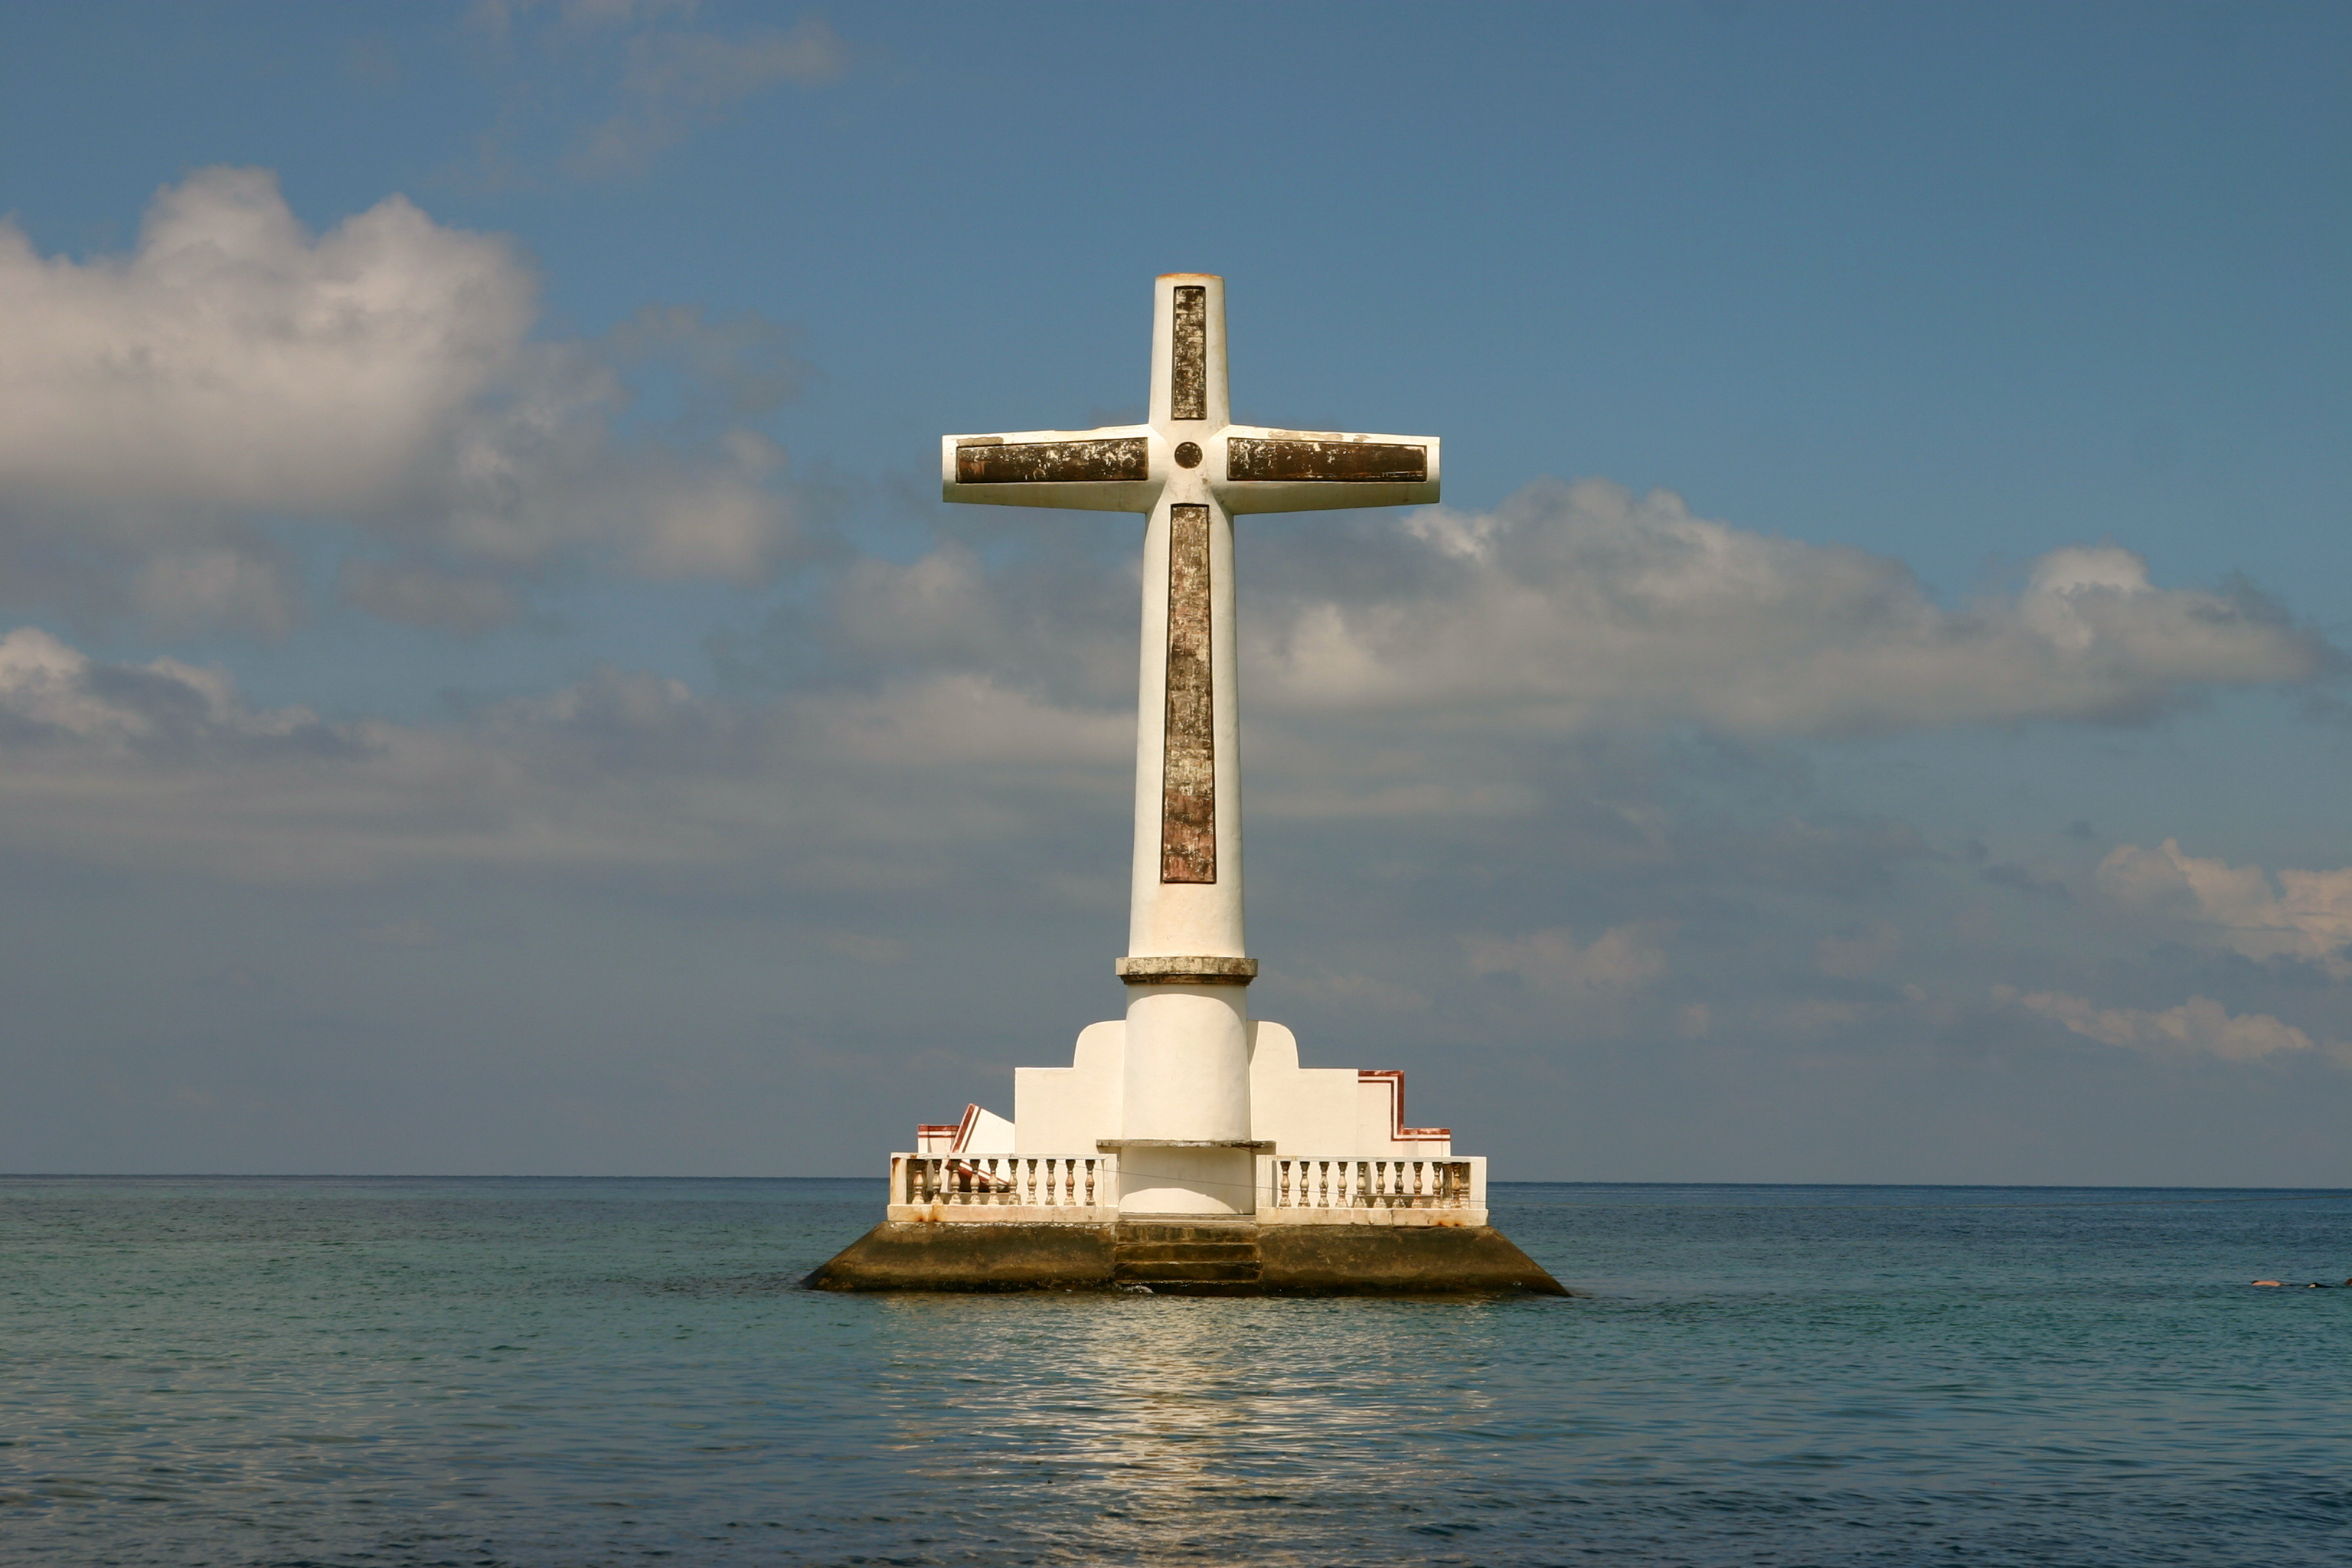 Sunken Cemetery Camiguin, Sunken Cemetery of Camiguin | The Definitive Funeral Planning and ...